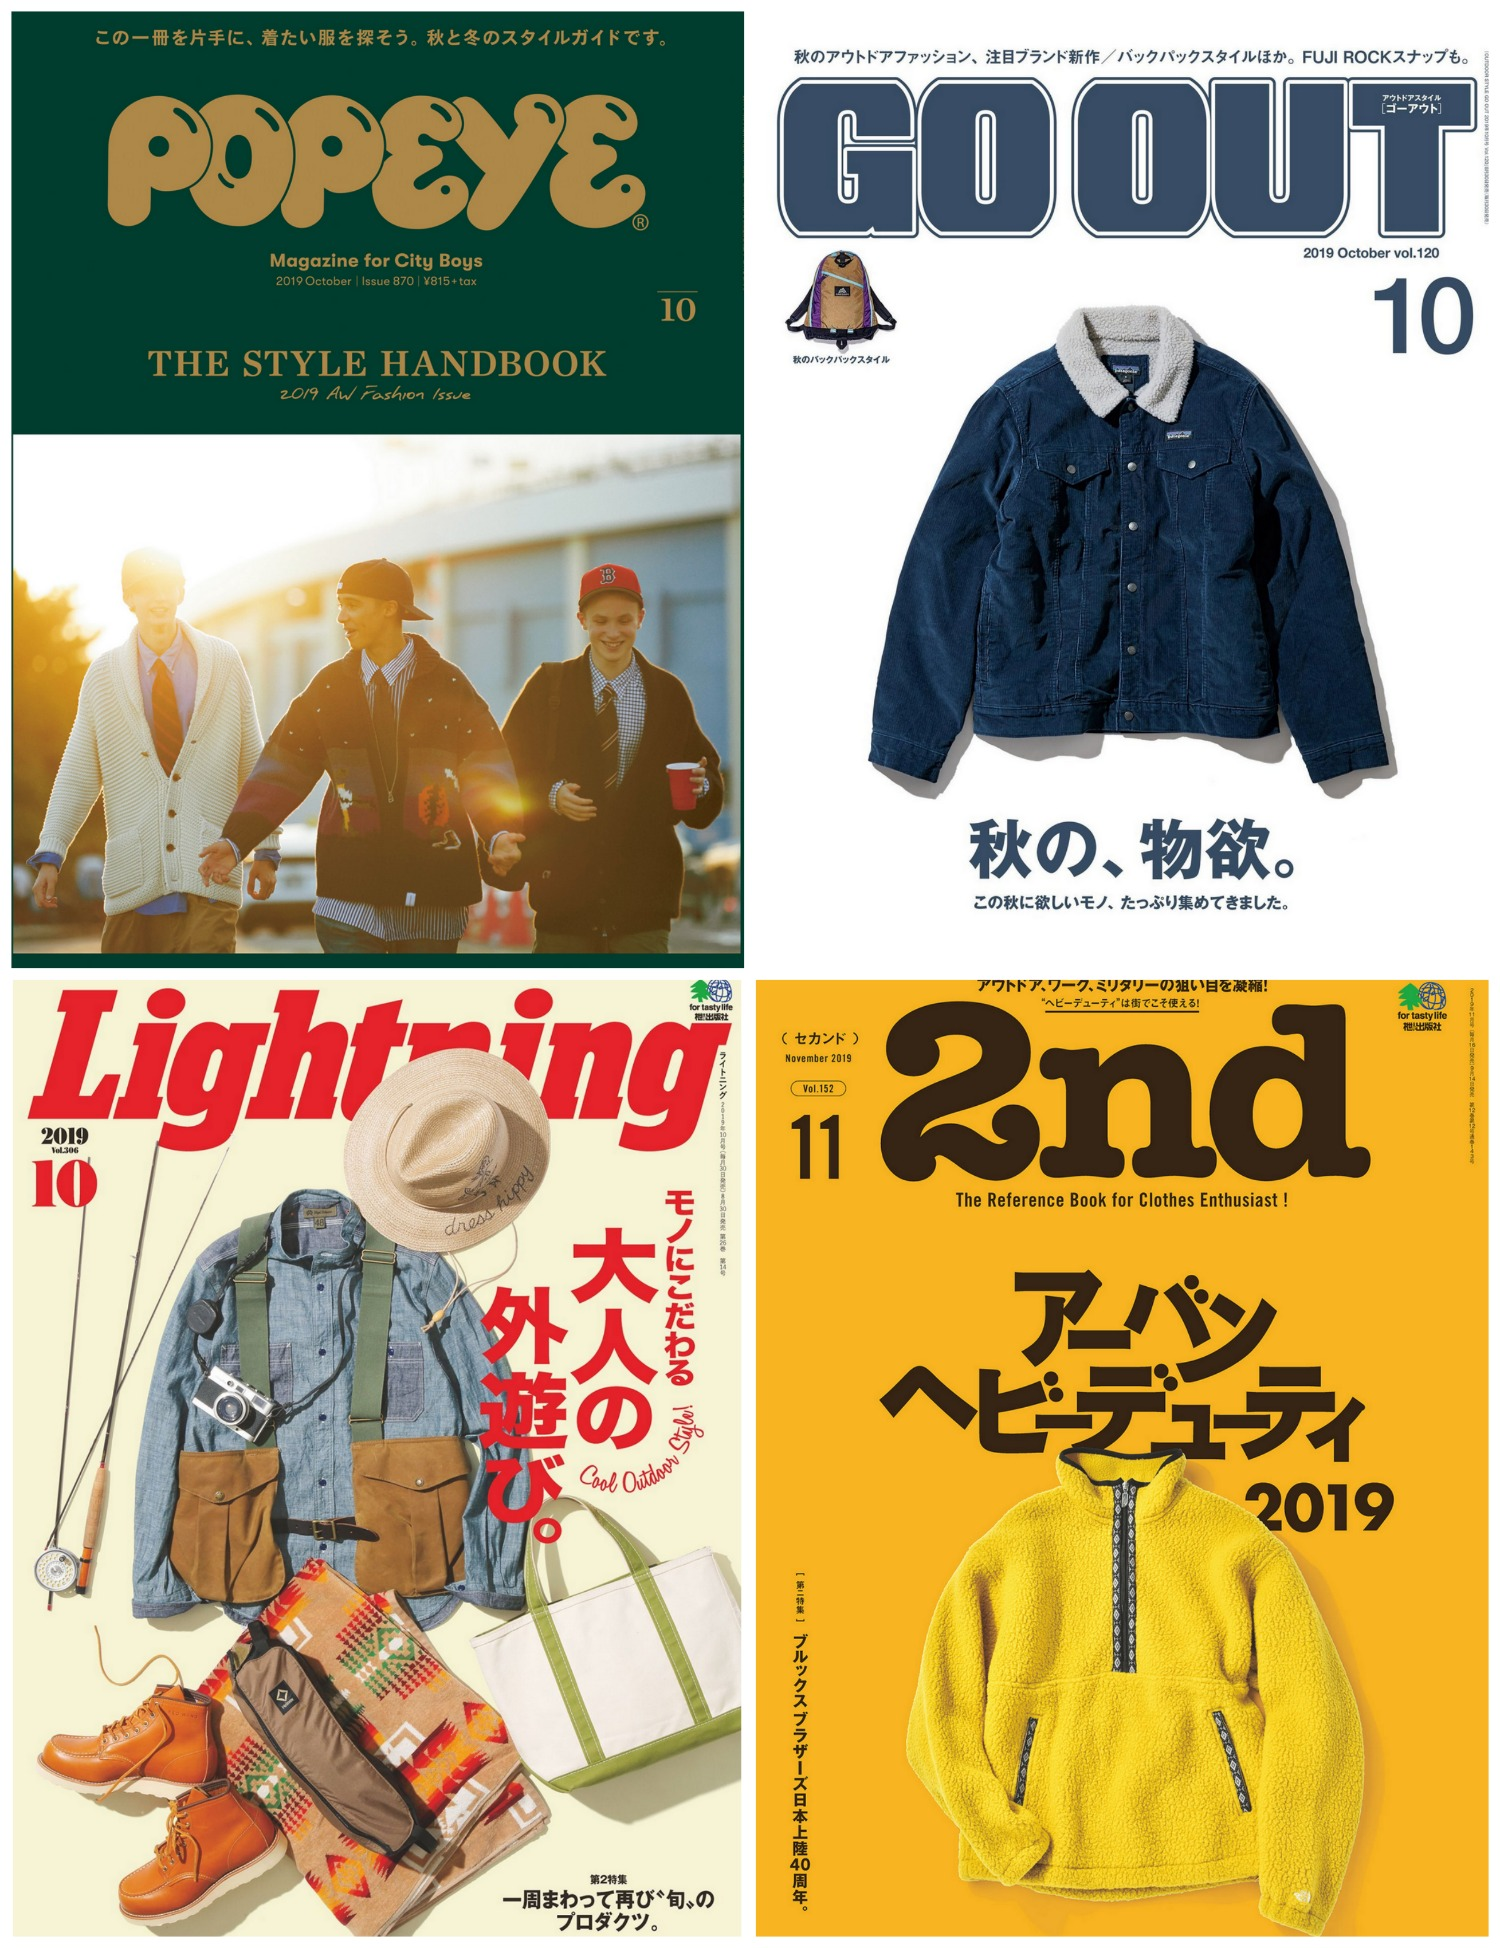 How to Read Japanese Fashion Magazines Online